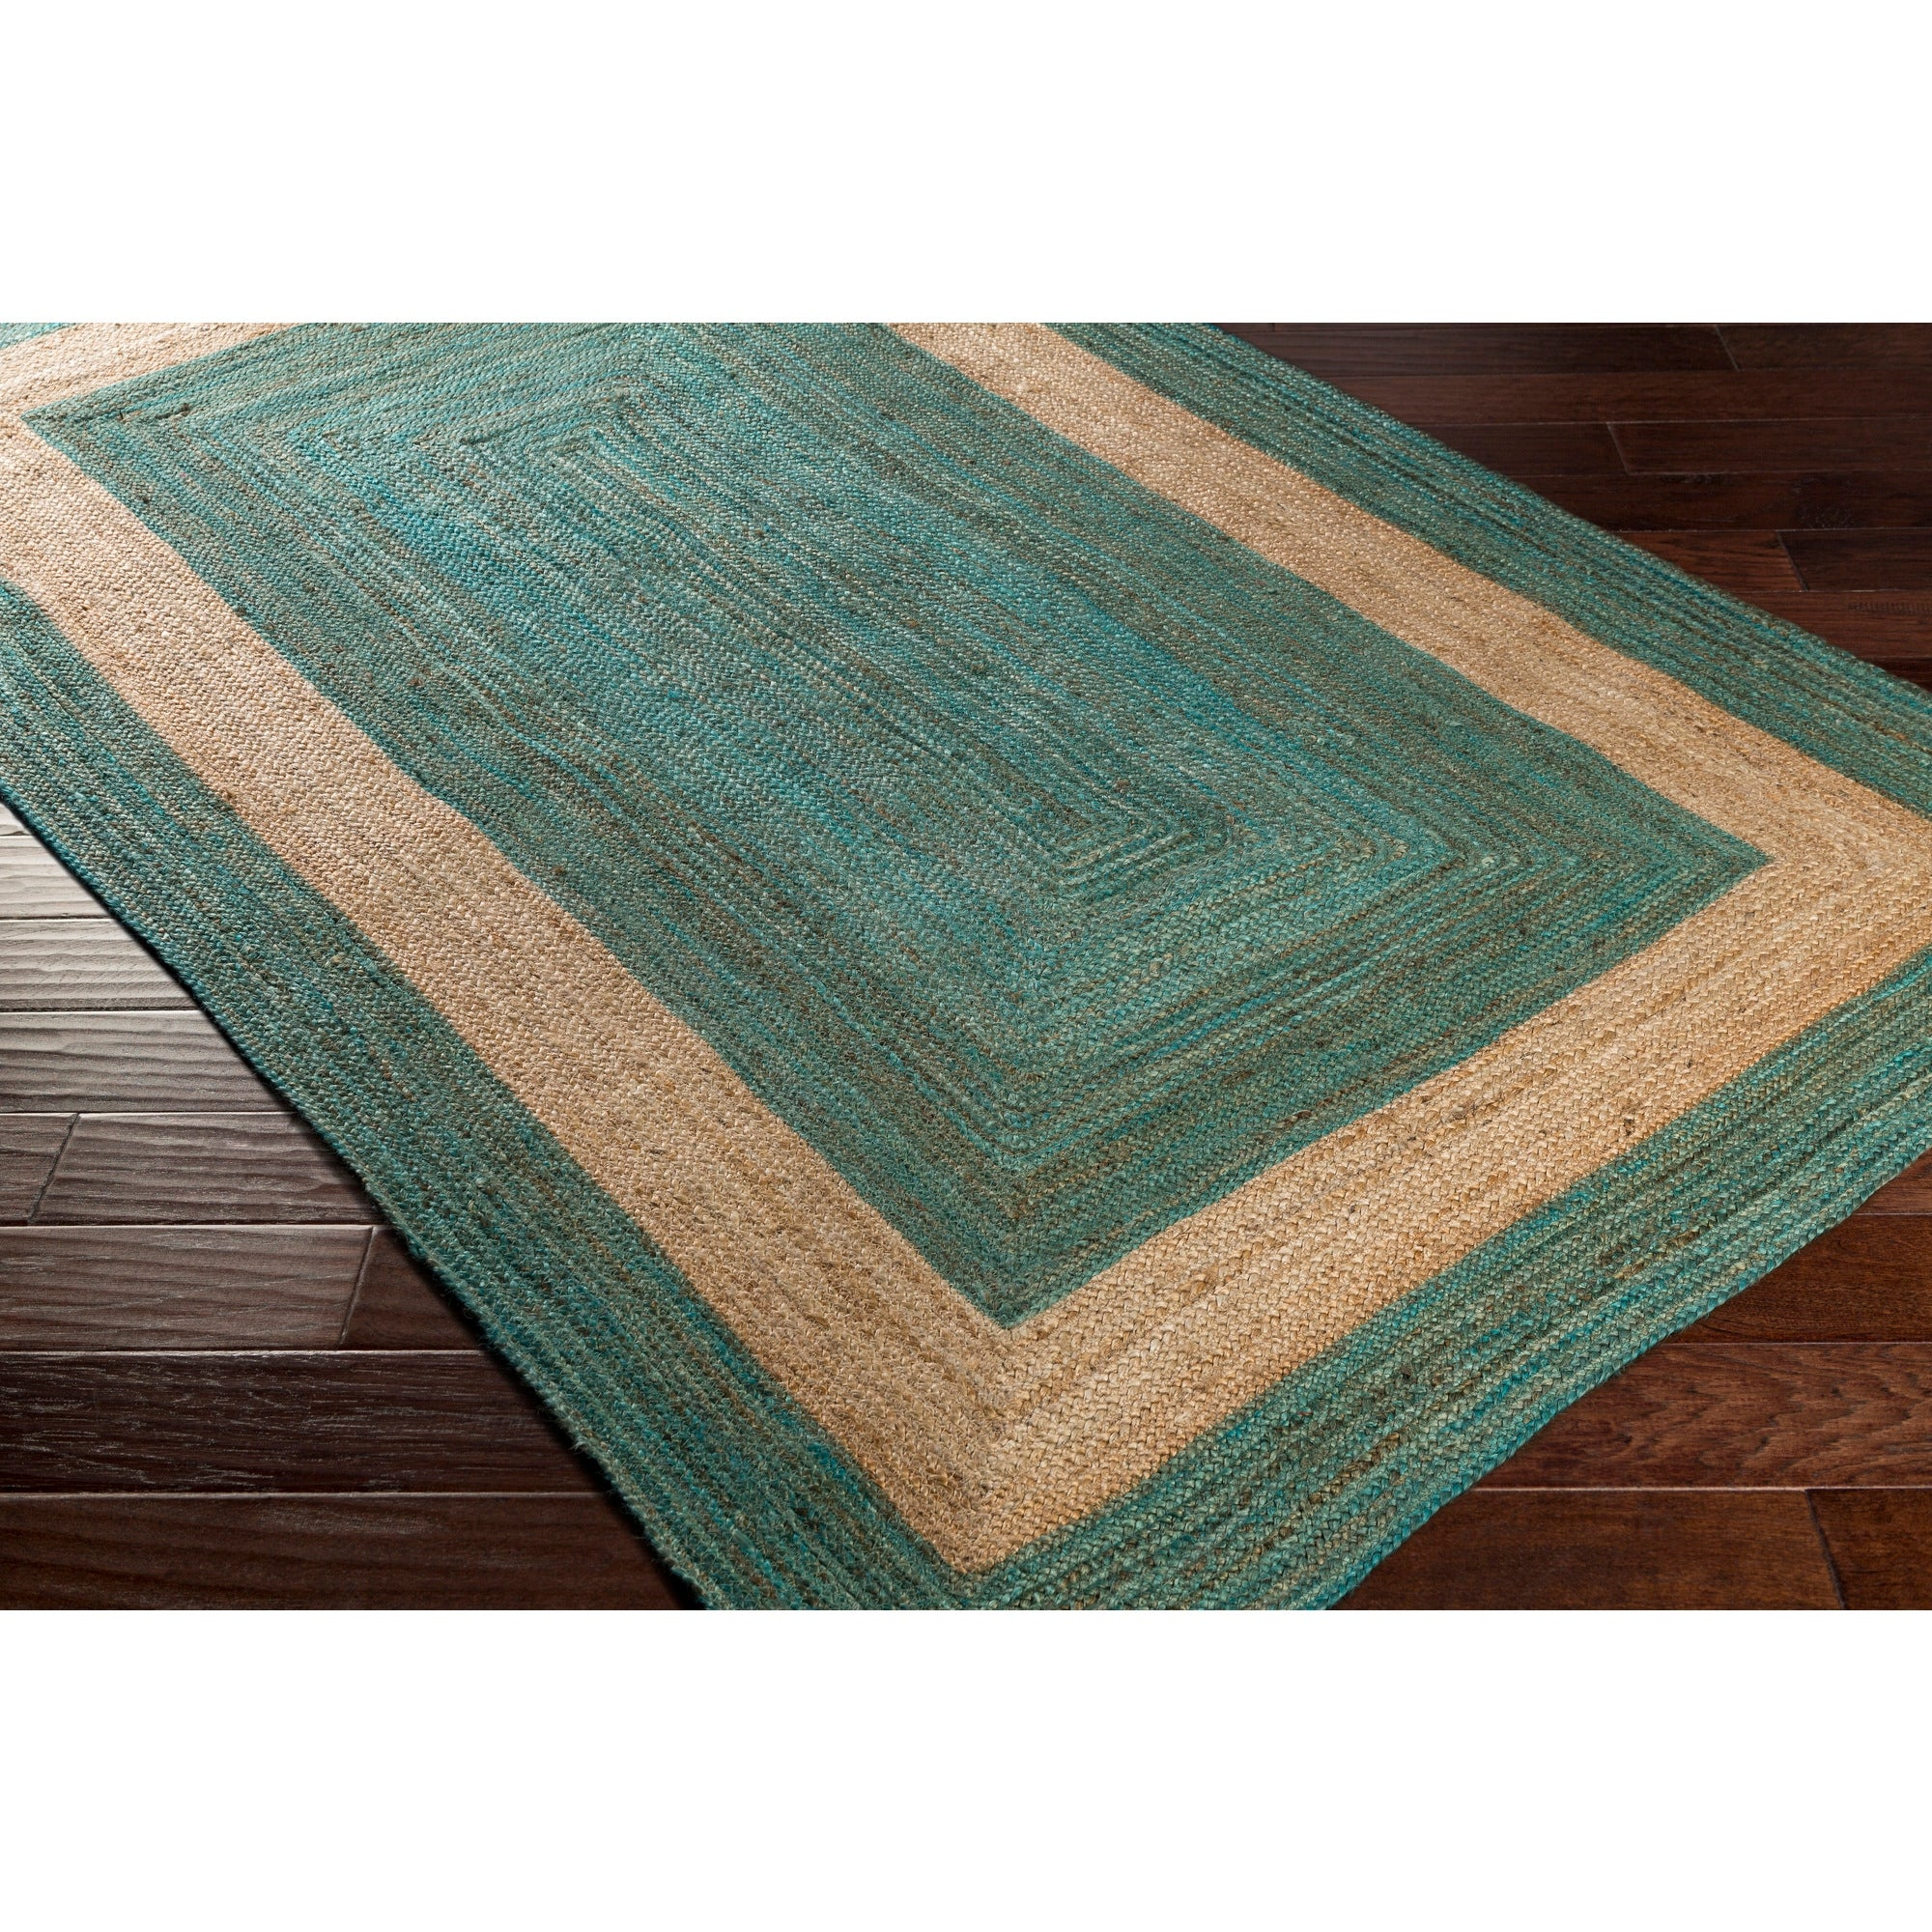 Hand Woven Canada Jute Area Rug